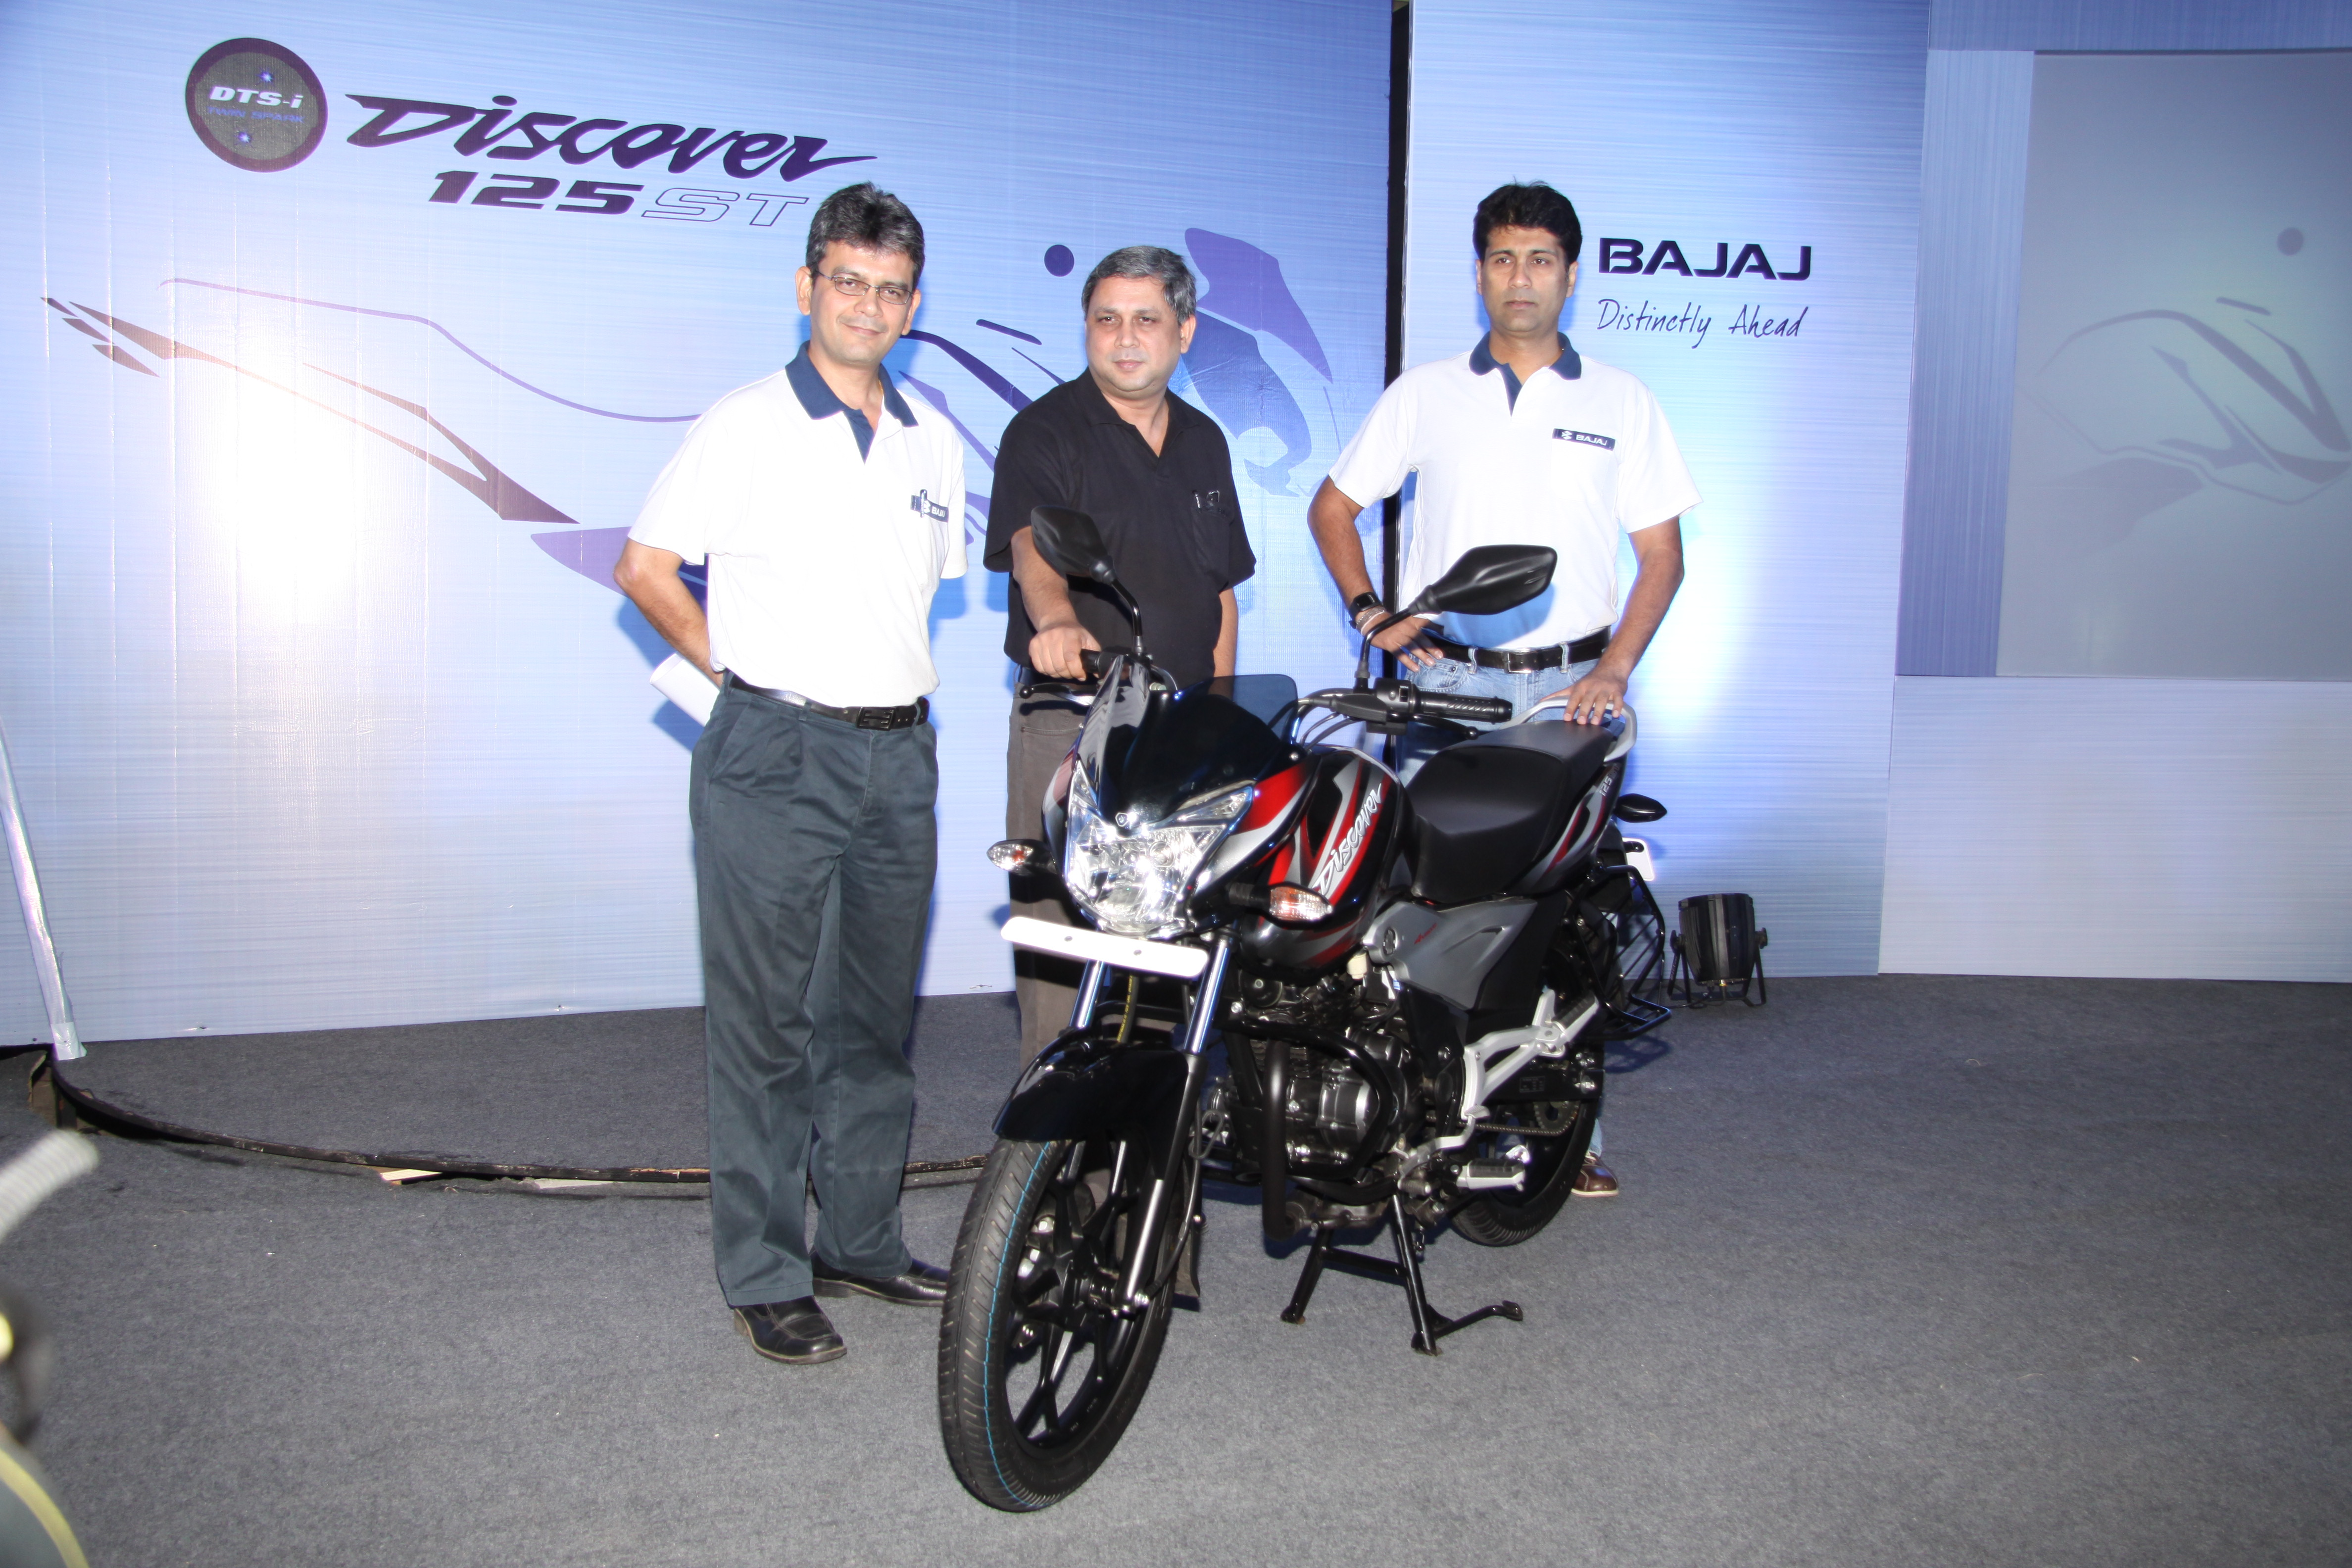 Bajaj reveals the all new Discover 125 ST (Full Image Gallery)